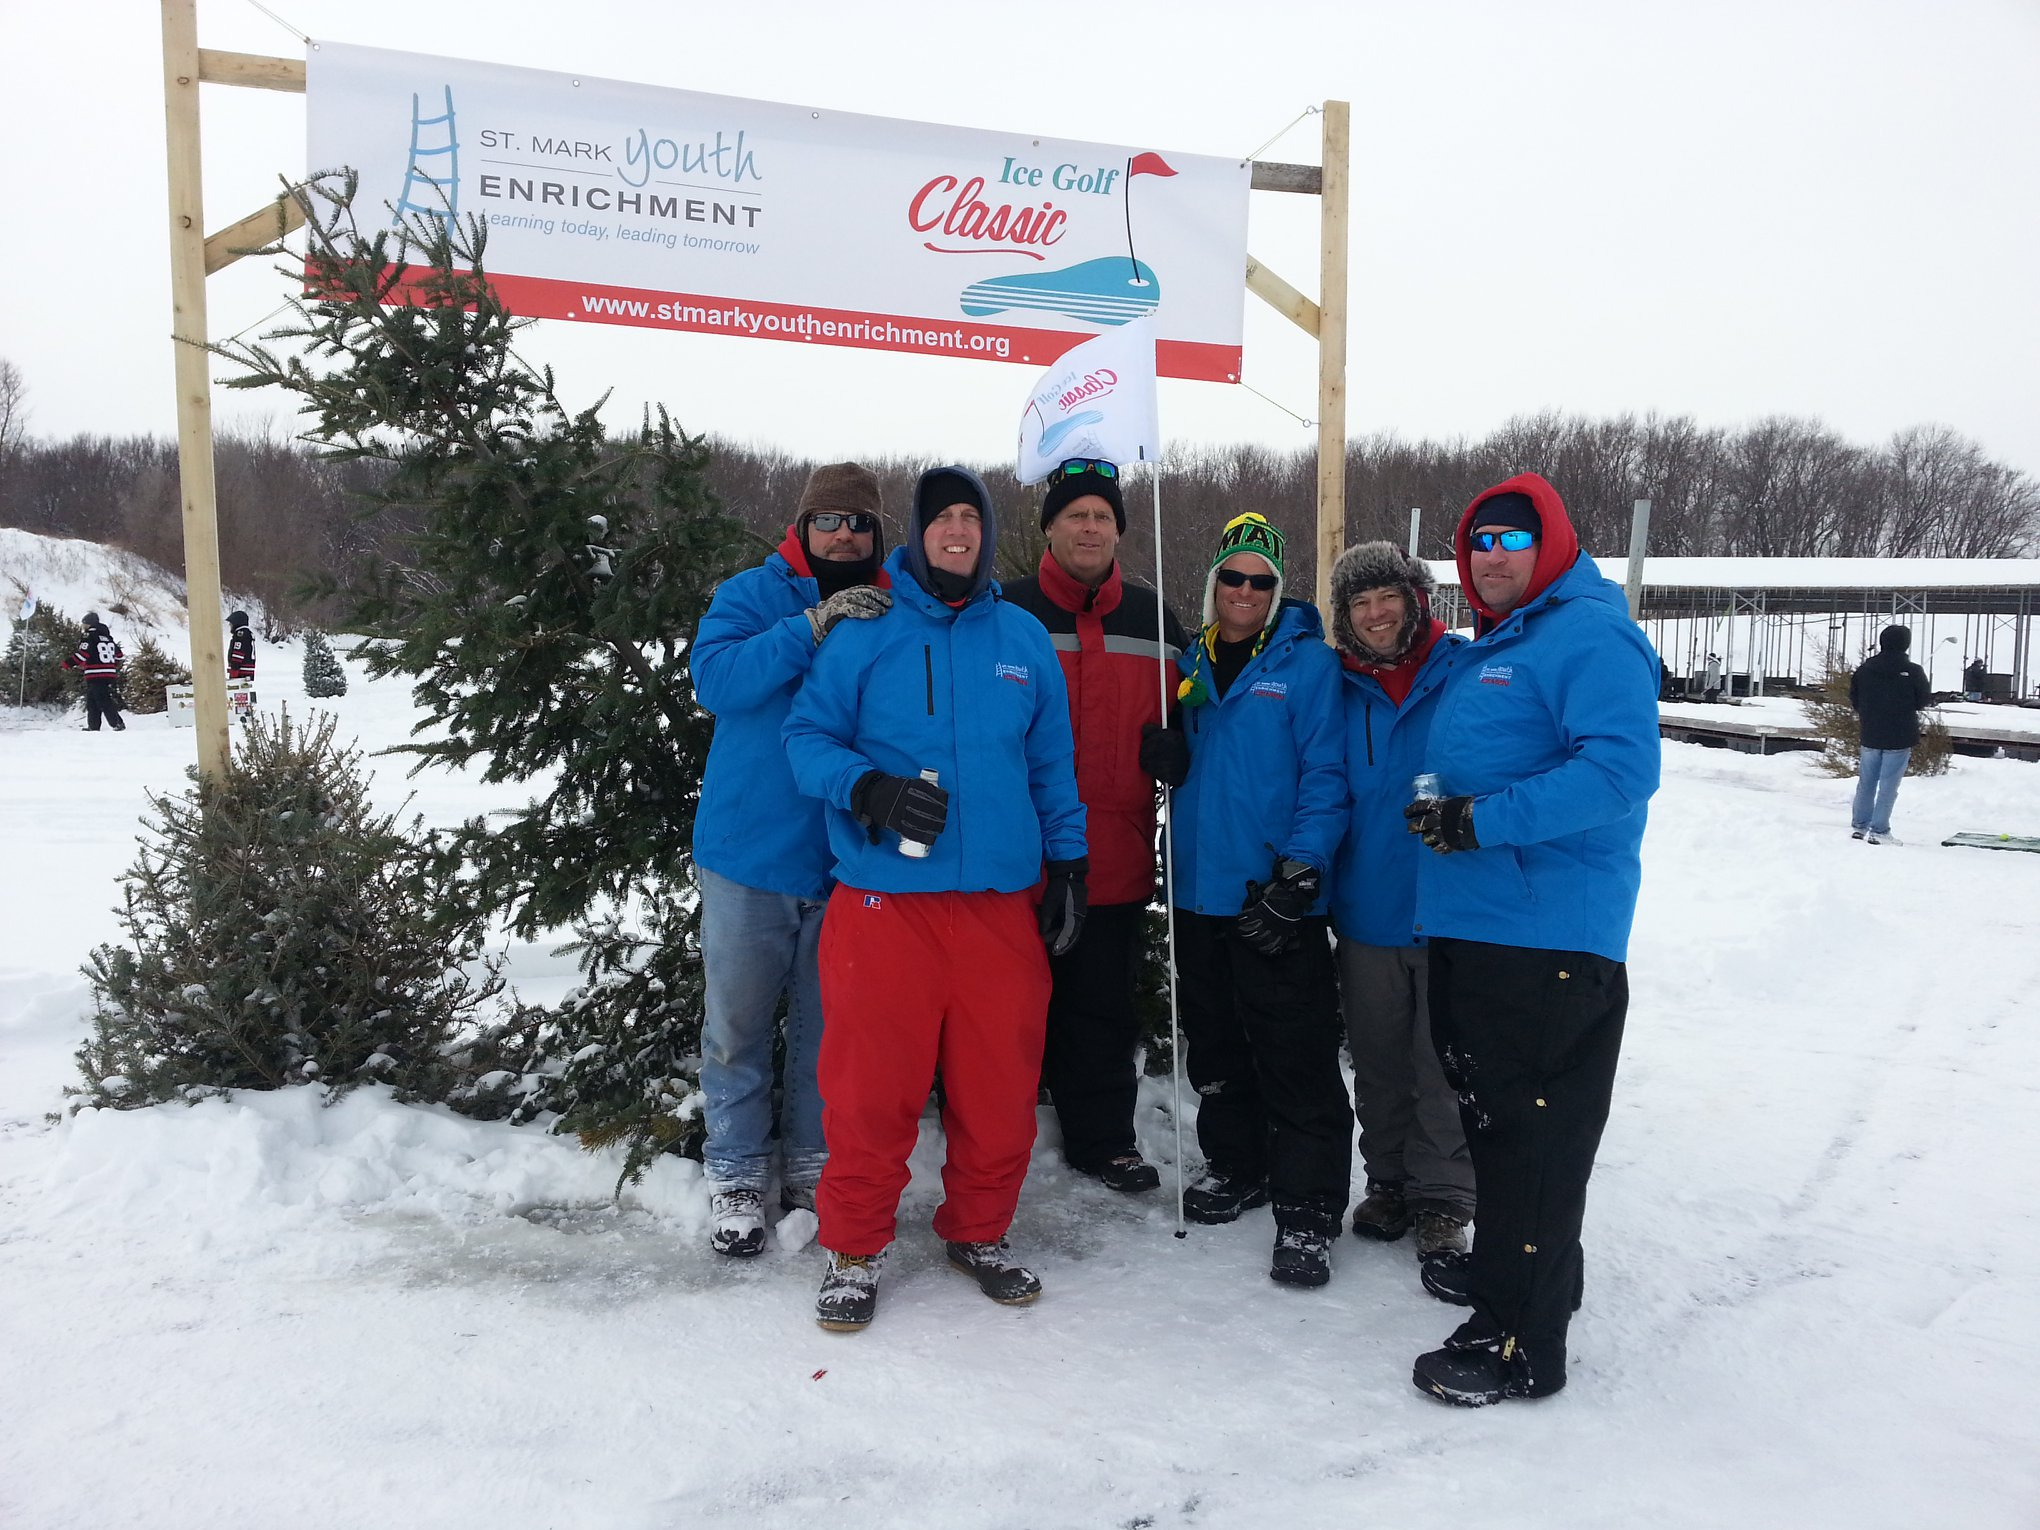 annual ice golf classic st mark youth enrichment